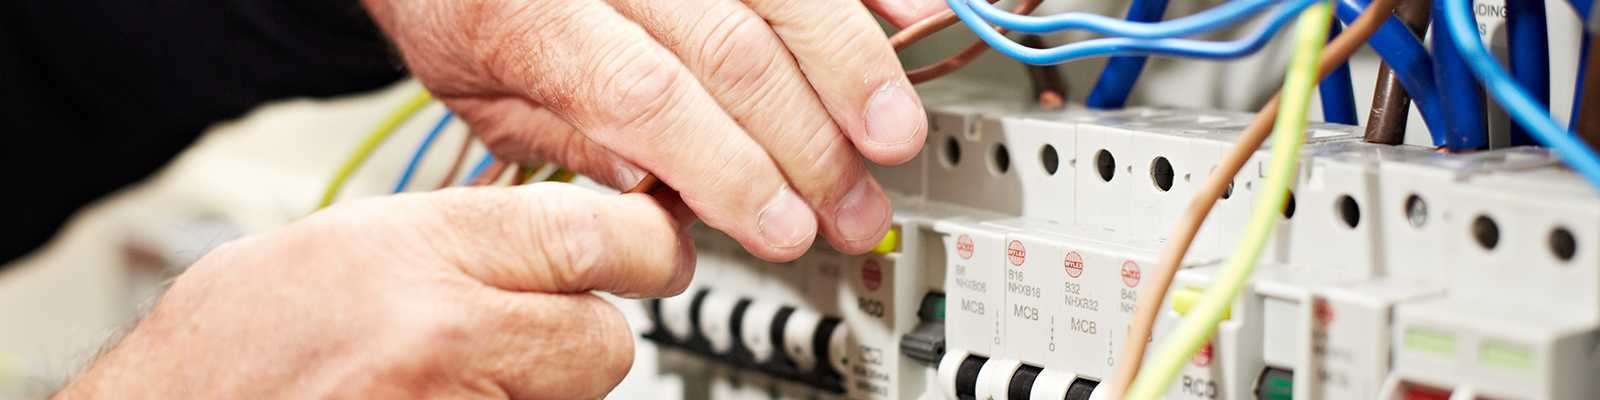 City & Guilds Level 3 Electrical Course